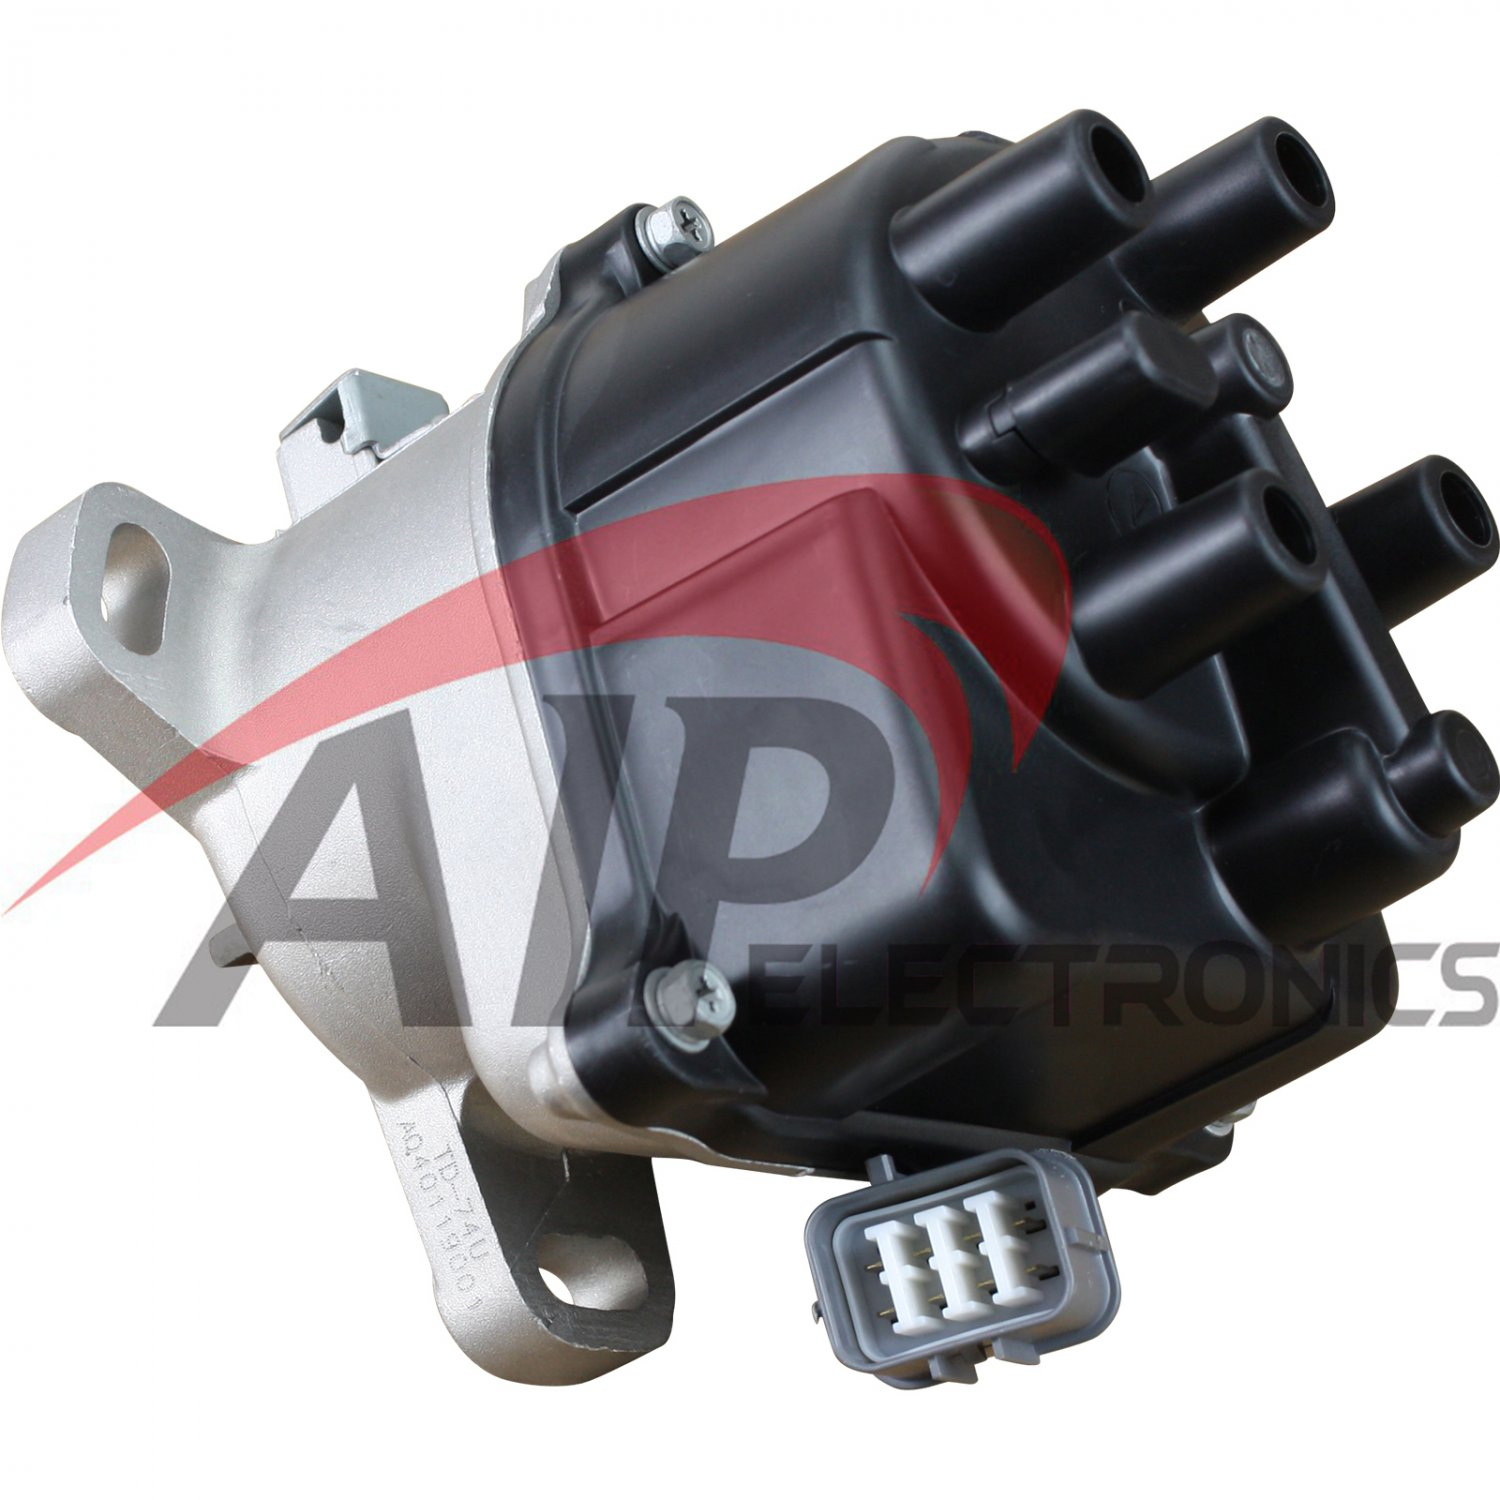 Brand New Heavy Duty Stock Series Ignition Distributor Complete 2.0L CR-V B20B Oem Fit DTD74-SS